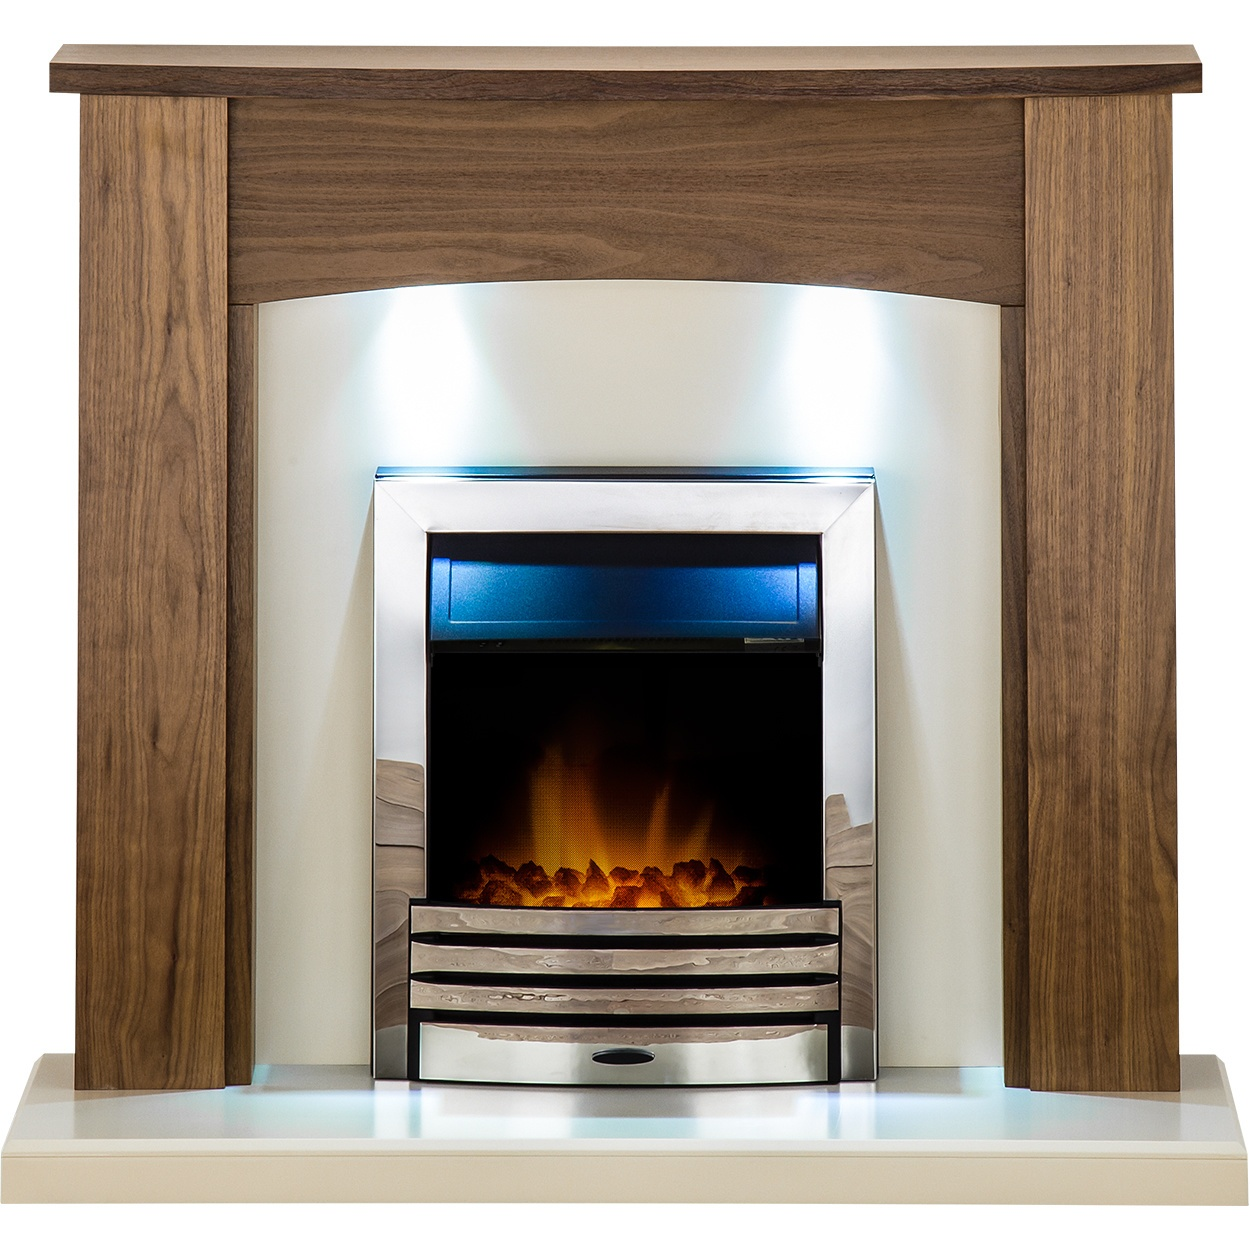 adam stanford fireplace suite in walnut with eclipse electric fire in chrome and downlights 48 inch